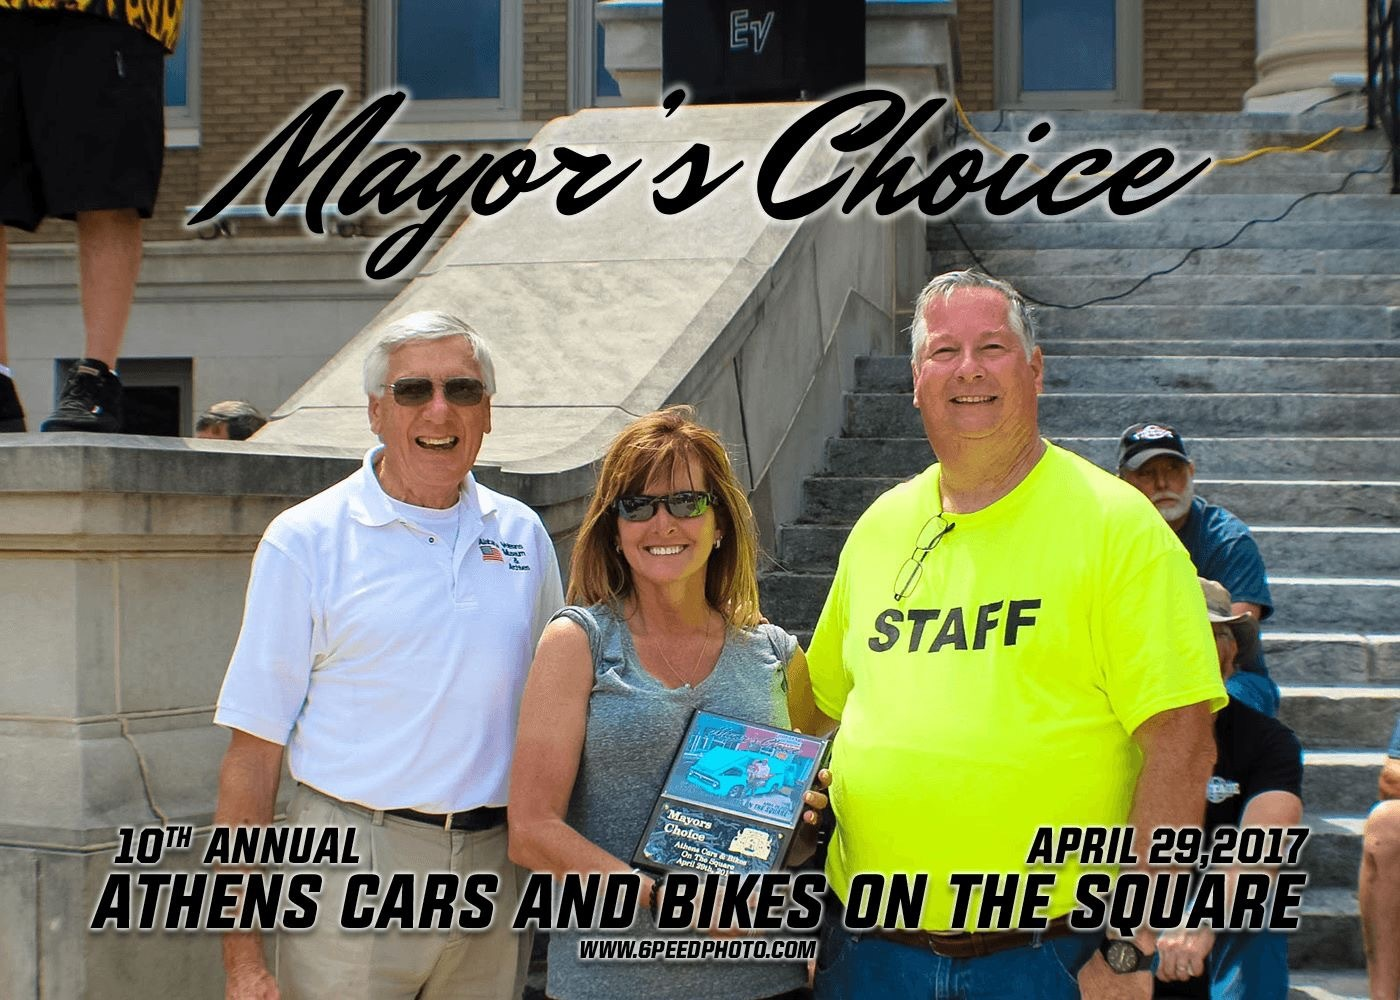 Mayor's Choice